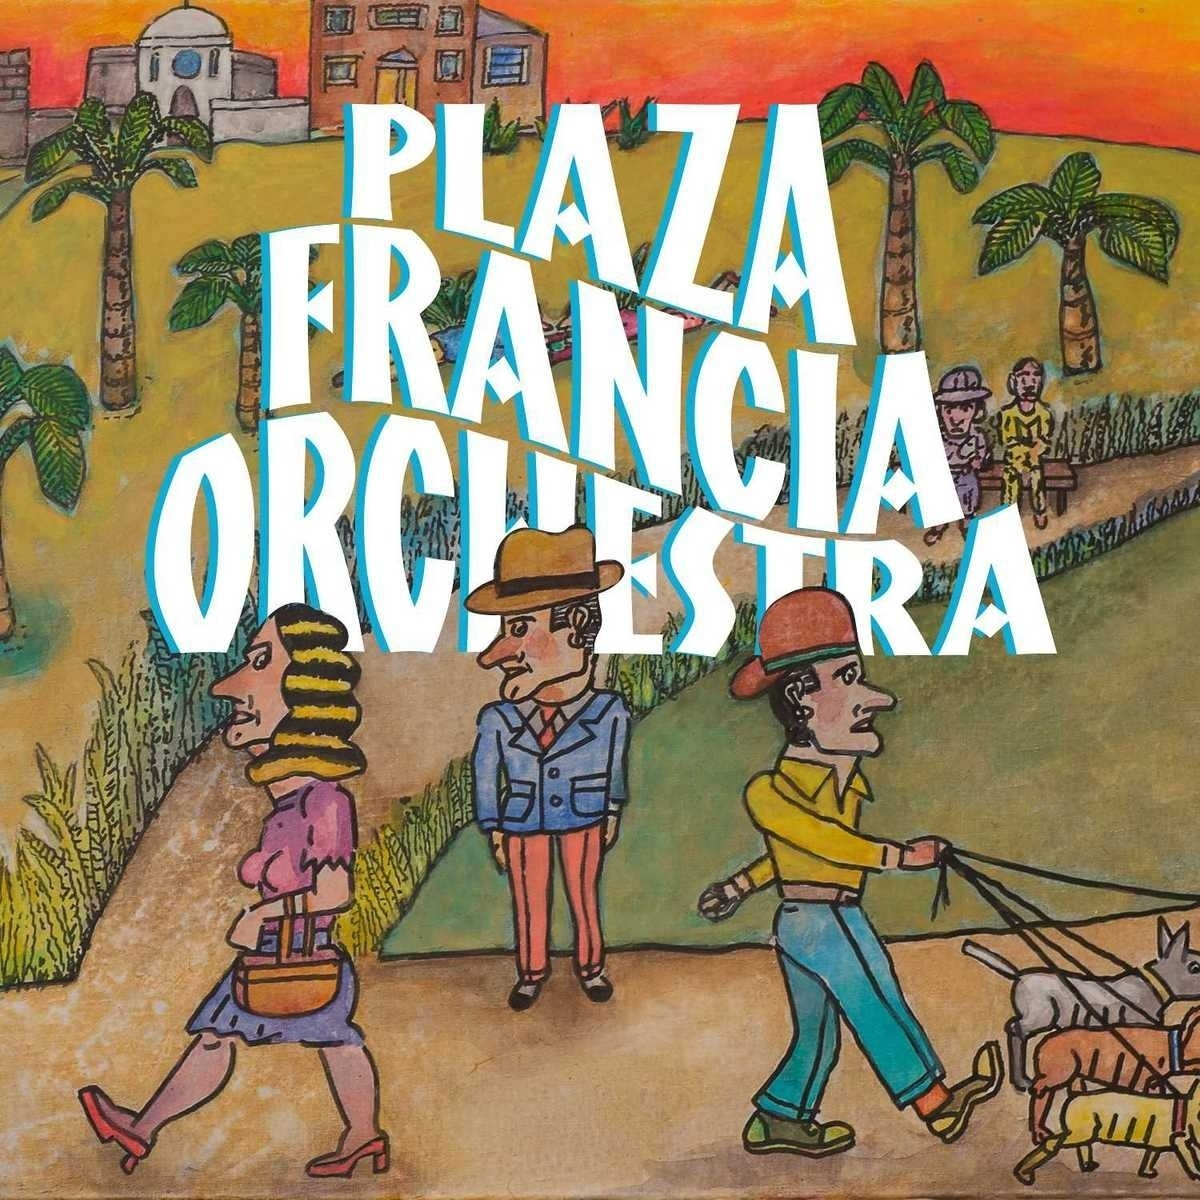 world 07 18 Francia Orchestra